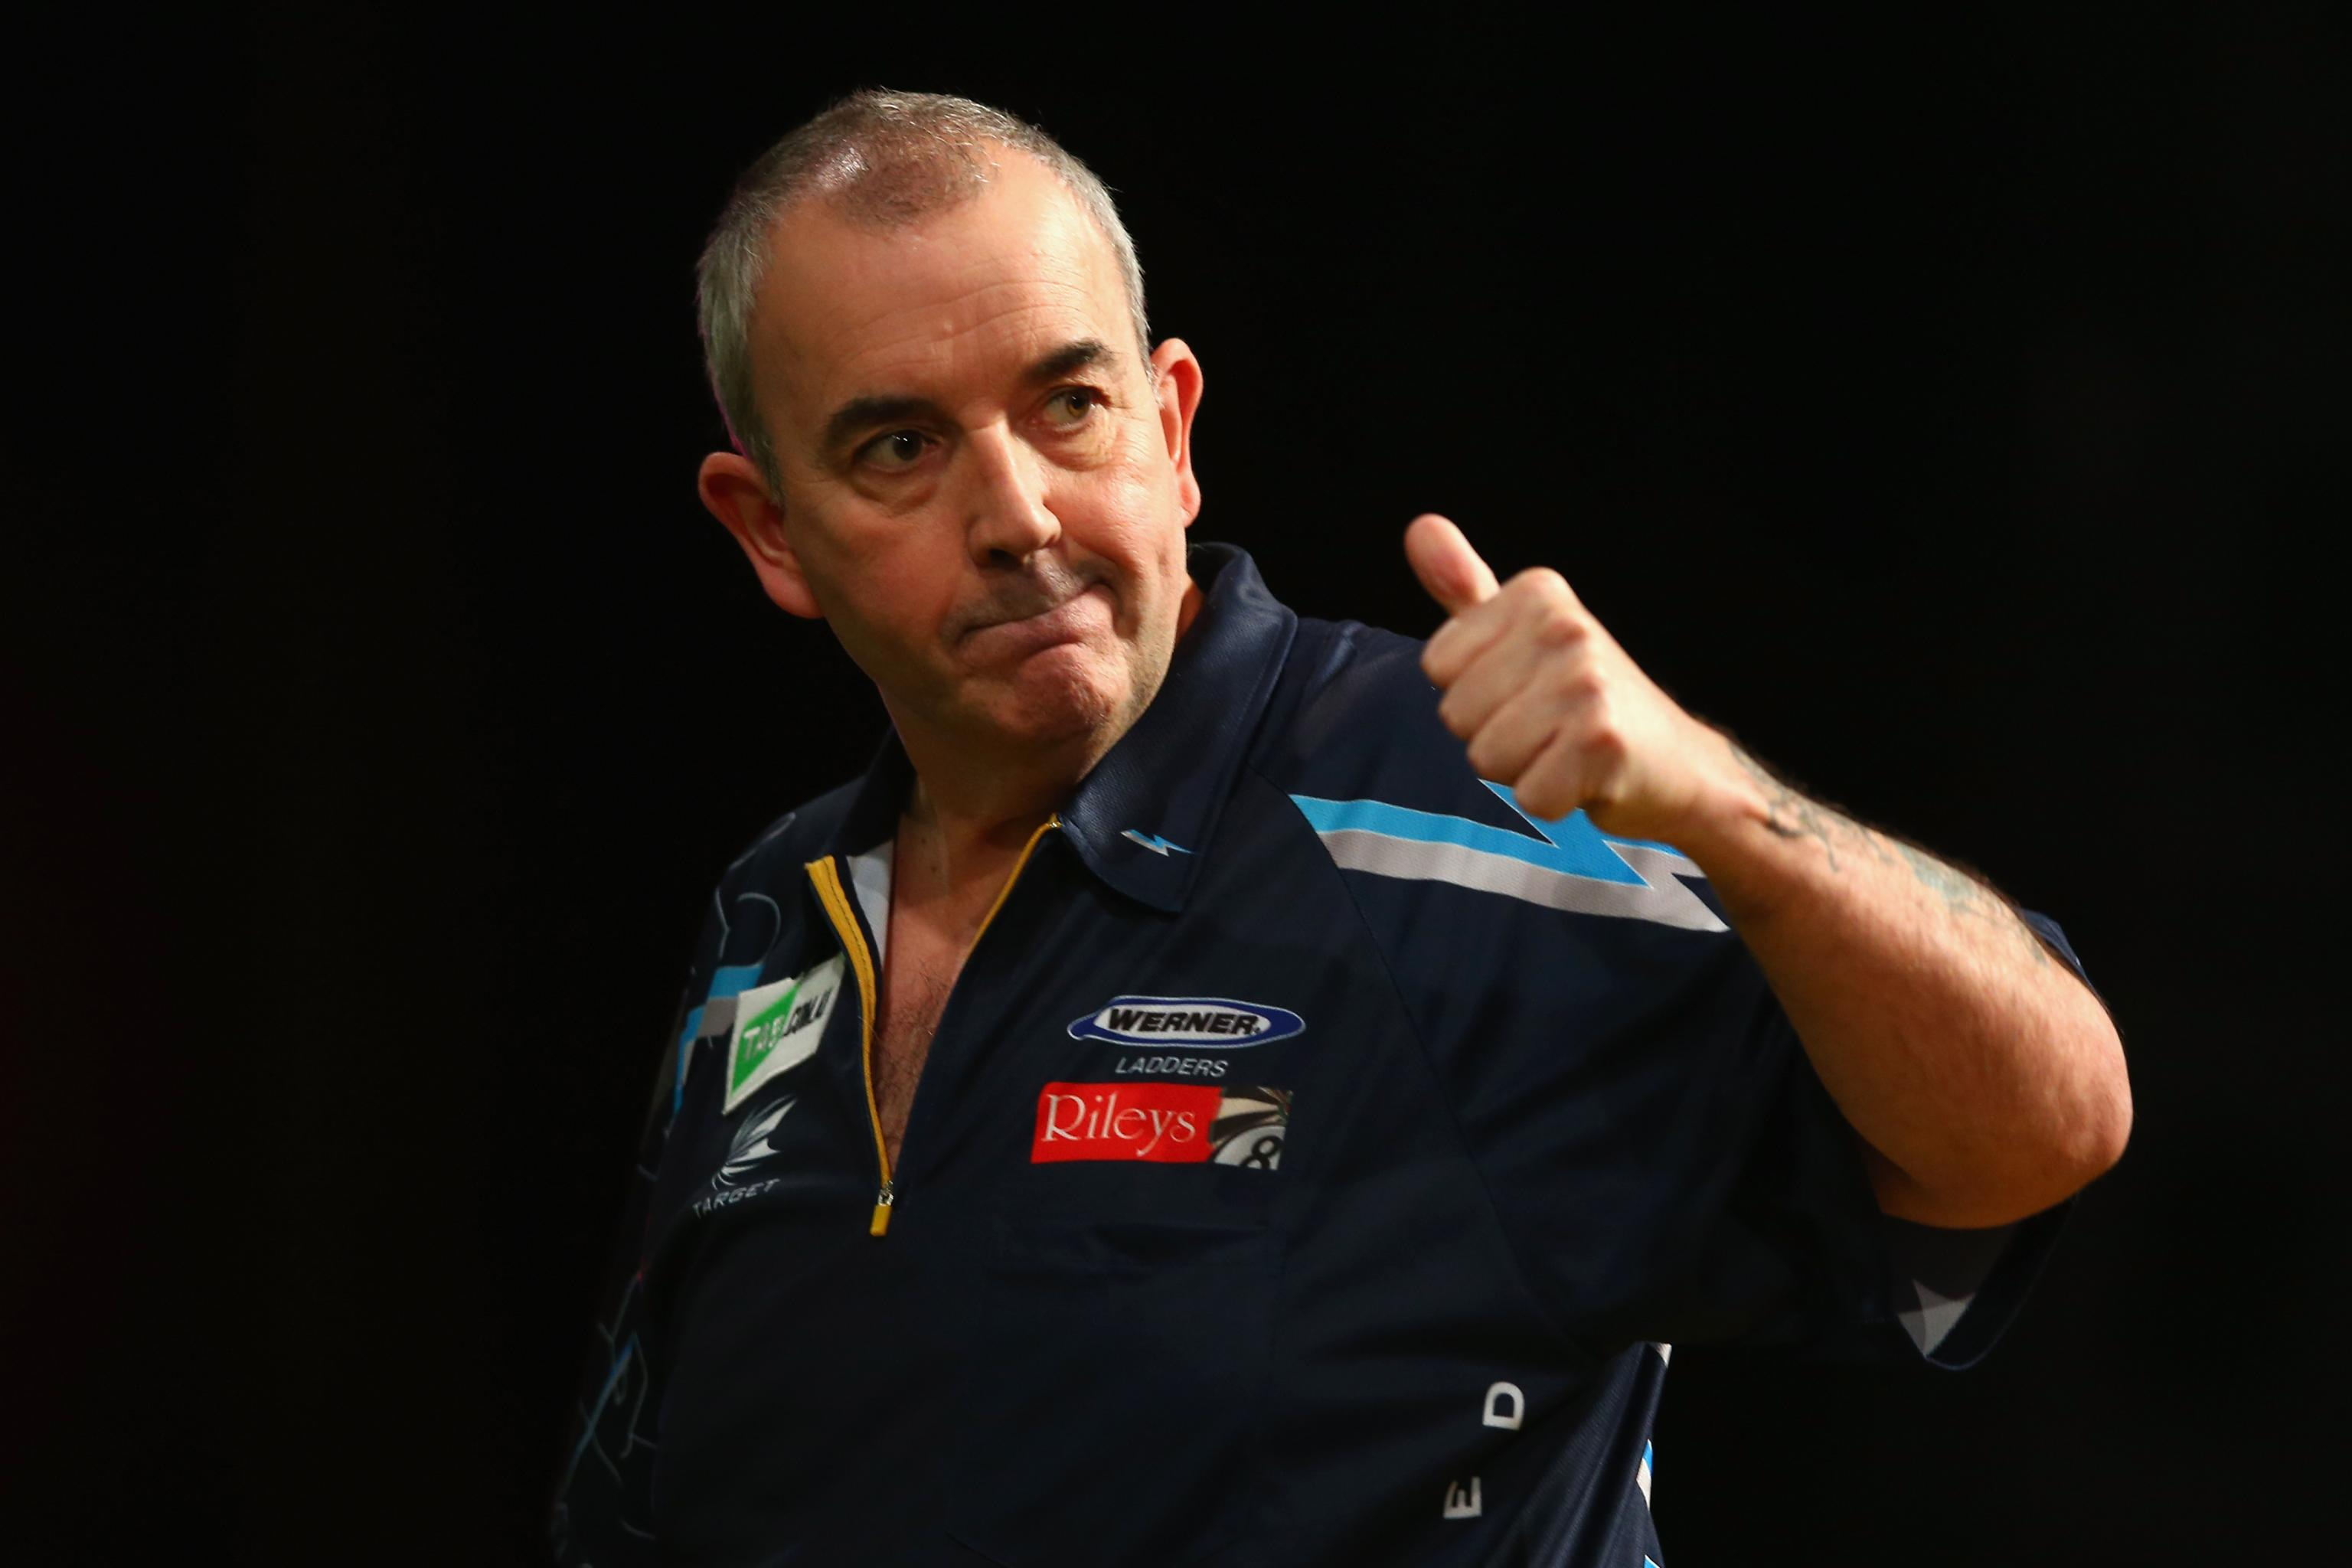 Sydney Darts Masters 2014: Tracking Final World Series Results and ...